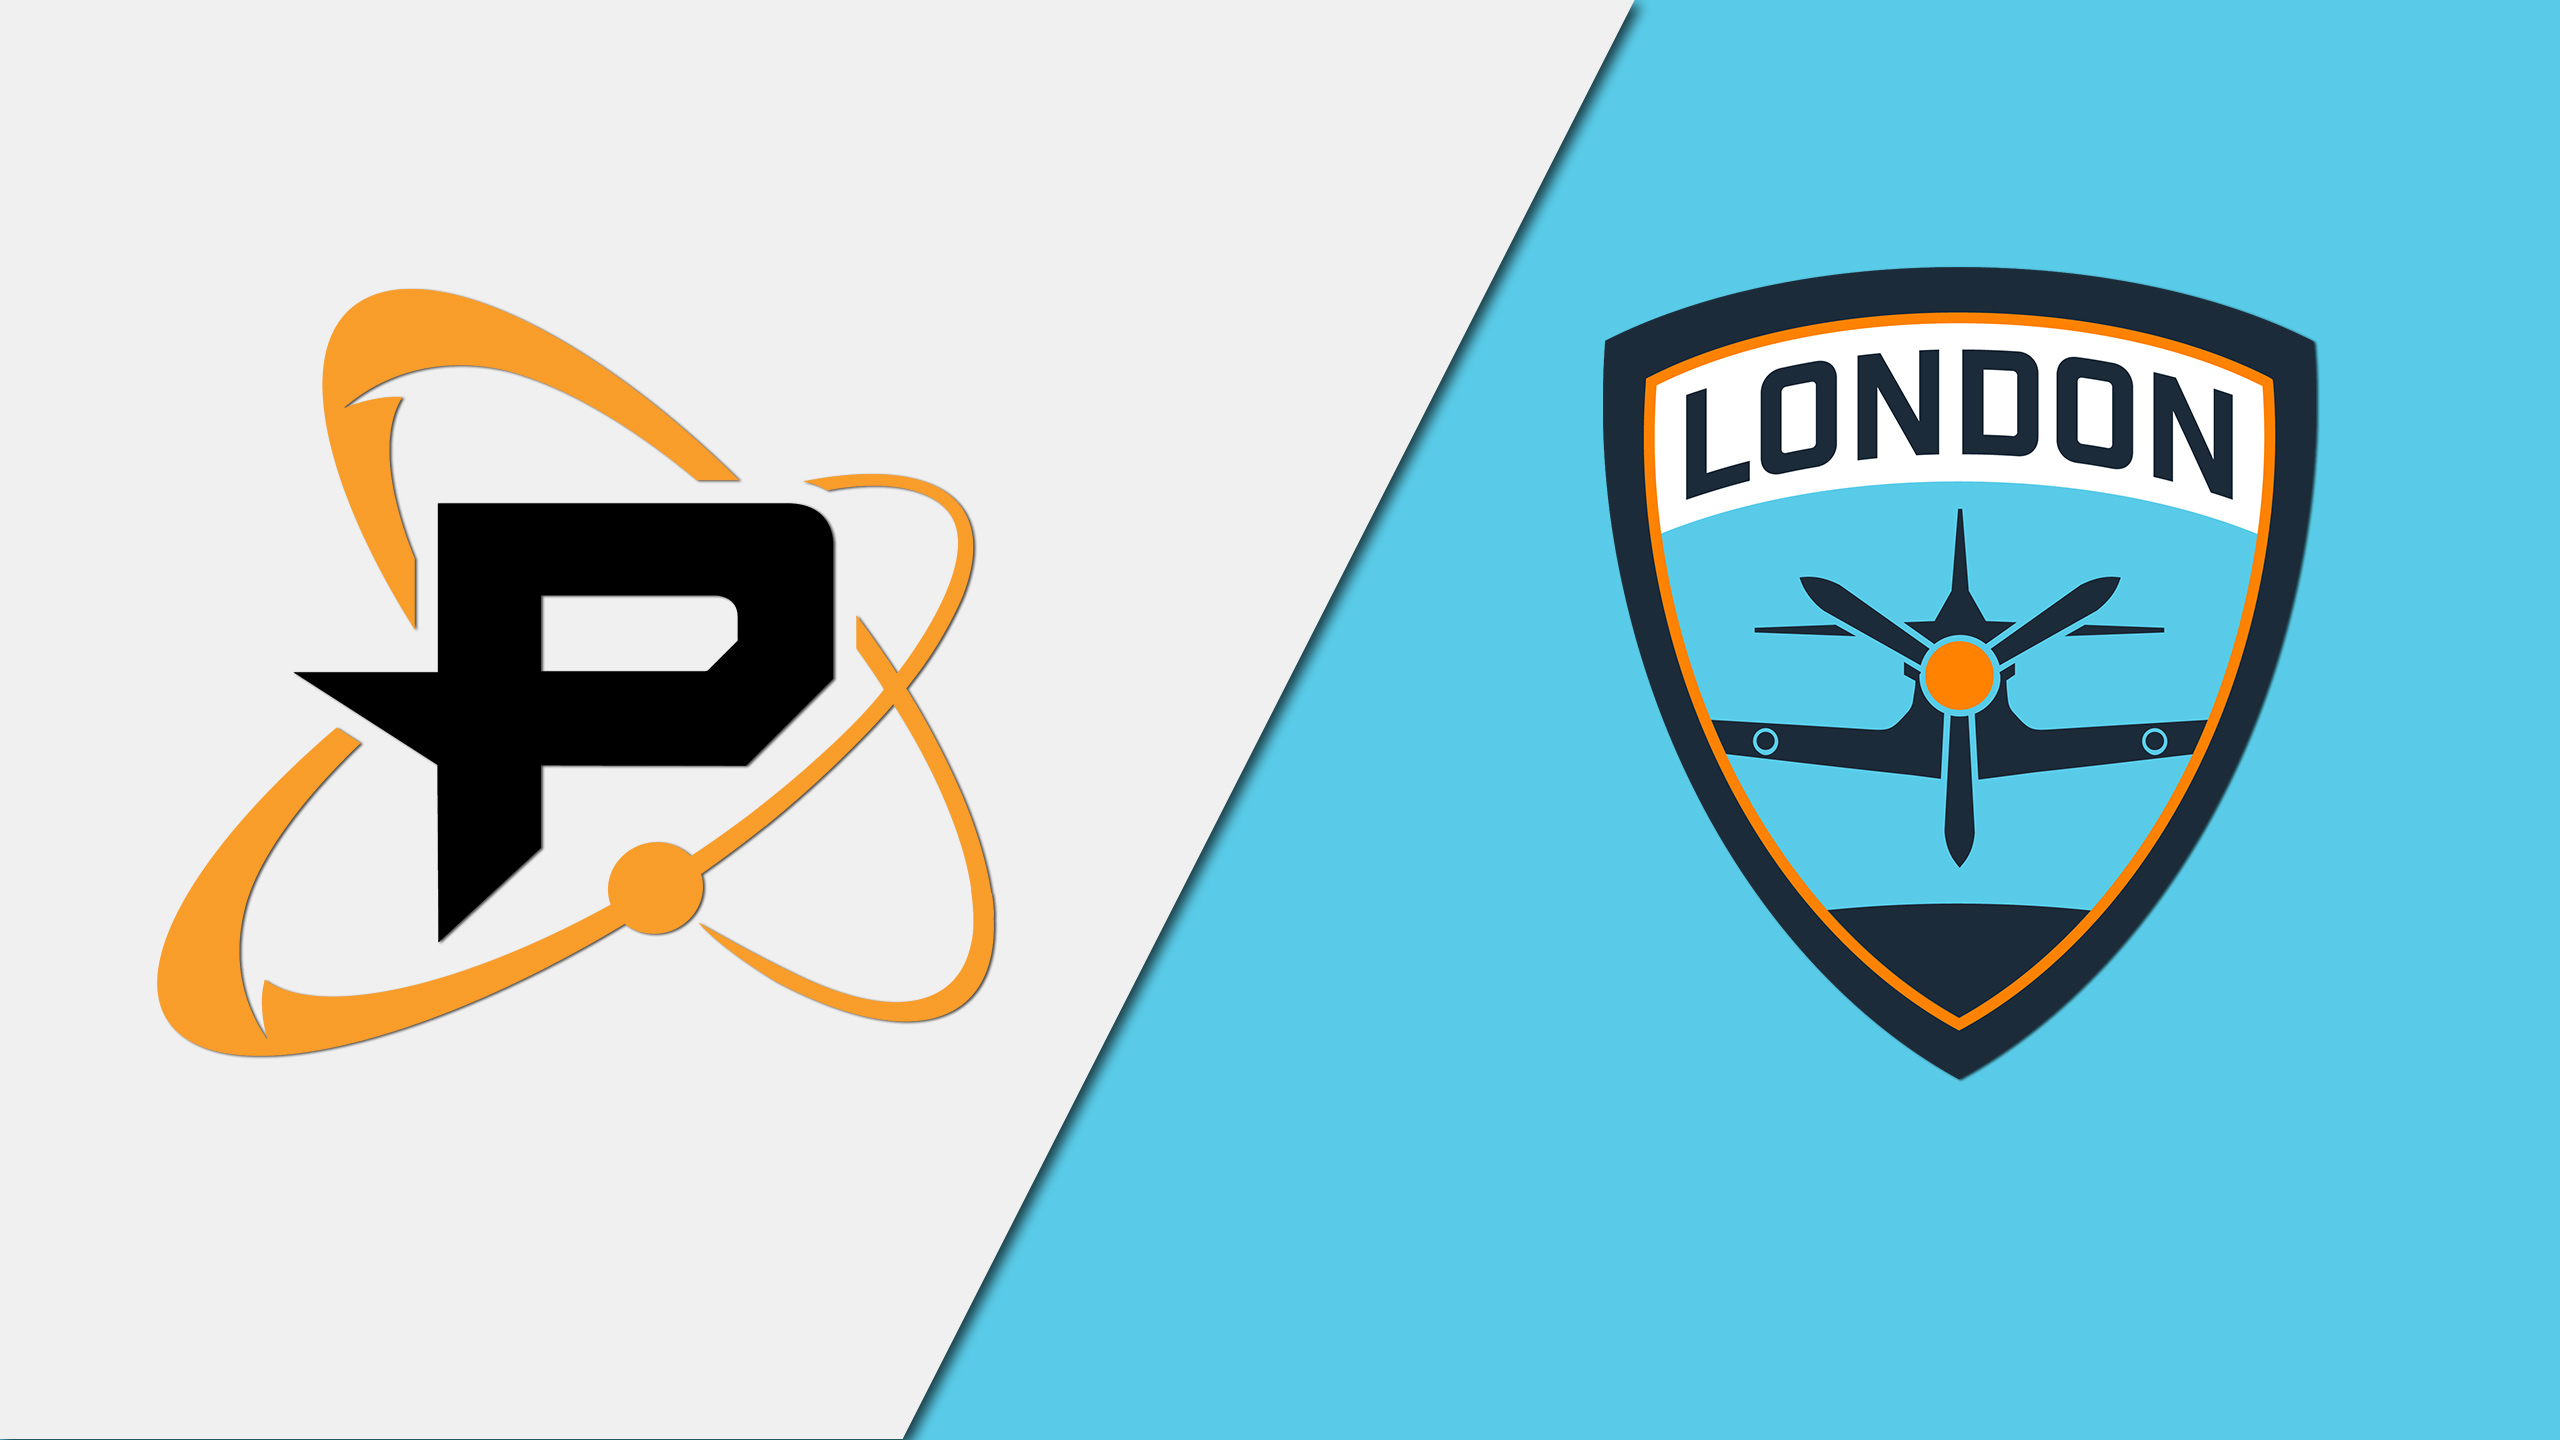 Philadelphia Fusion vs. London Spitfire